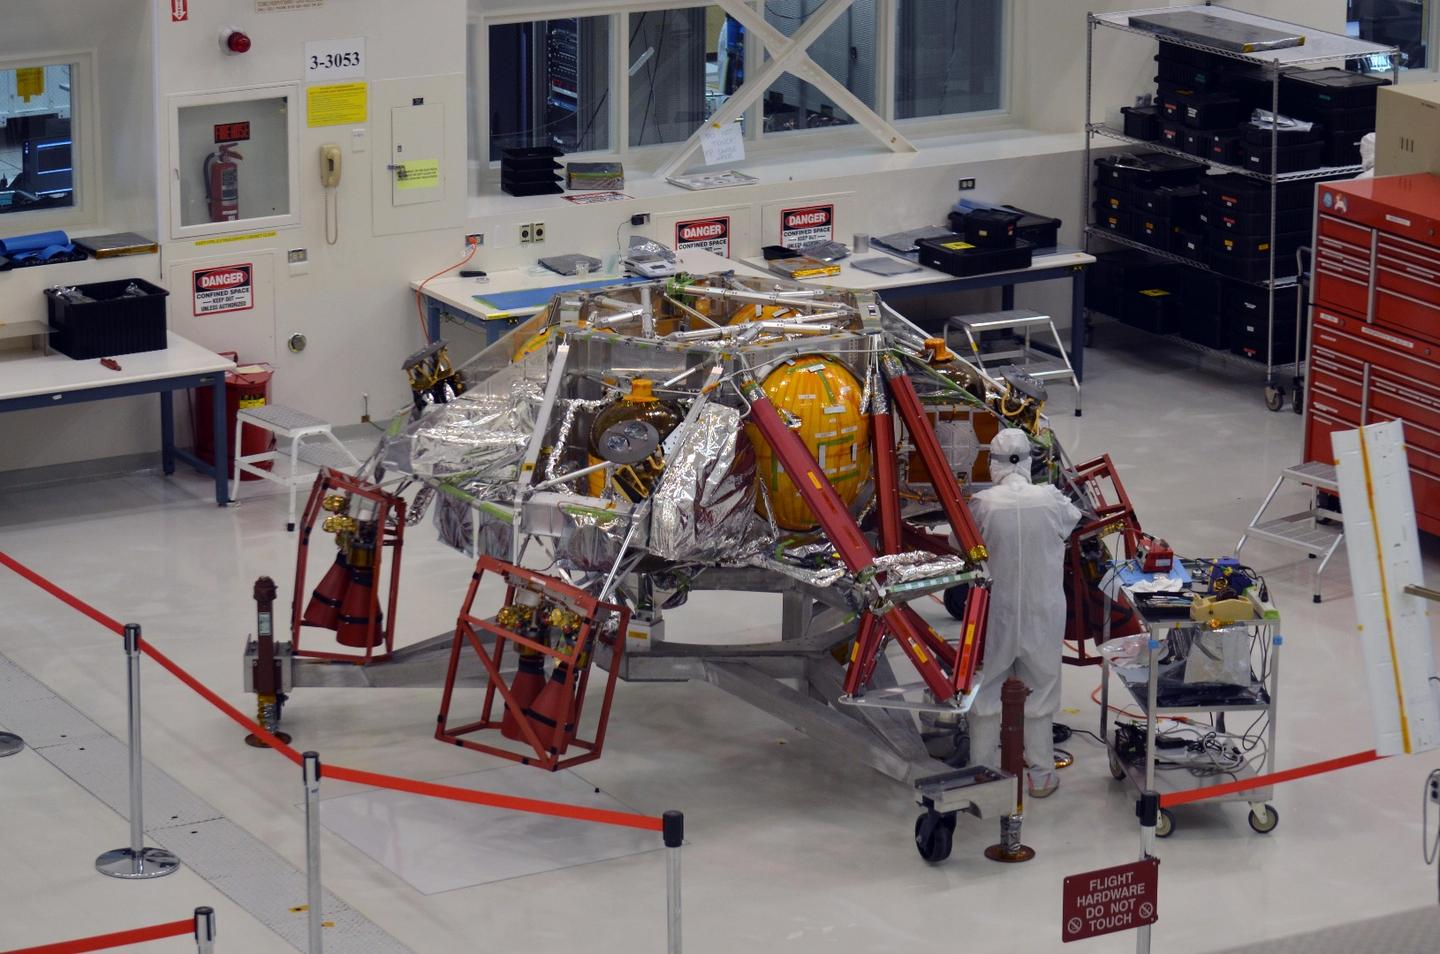 A technician works on the descent stage for NASA's Mars 2020 mission inside JPL's Spacecraft Assembly Facility